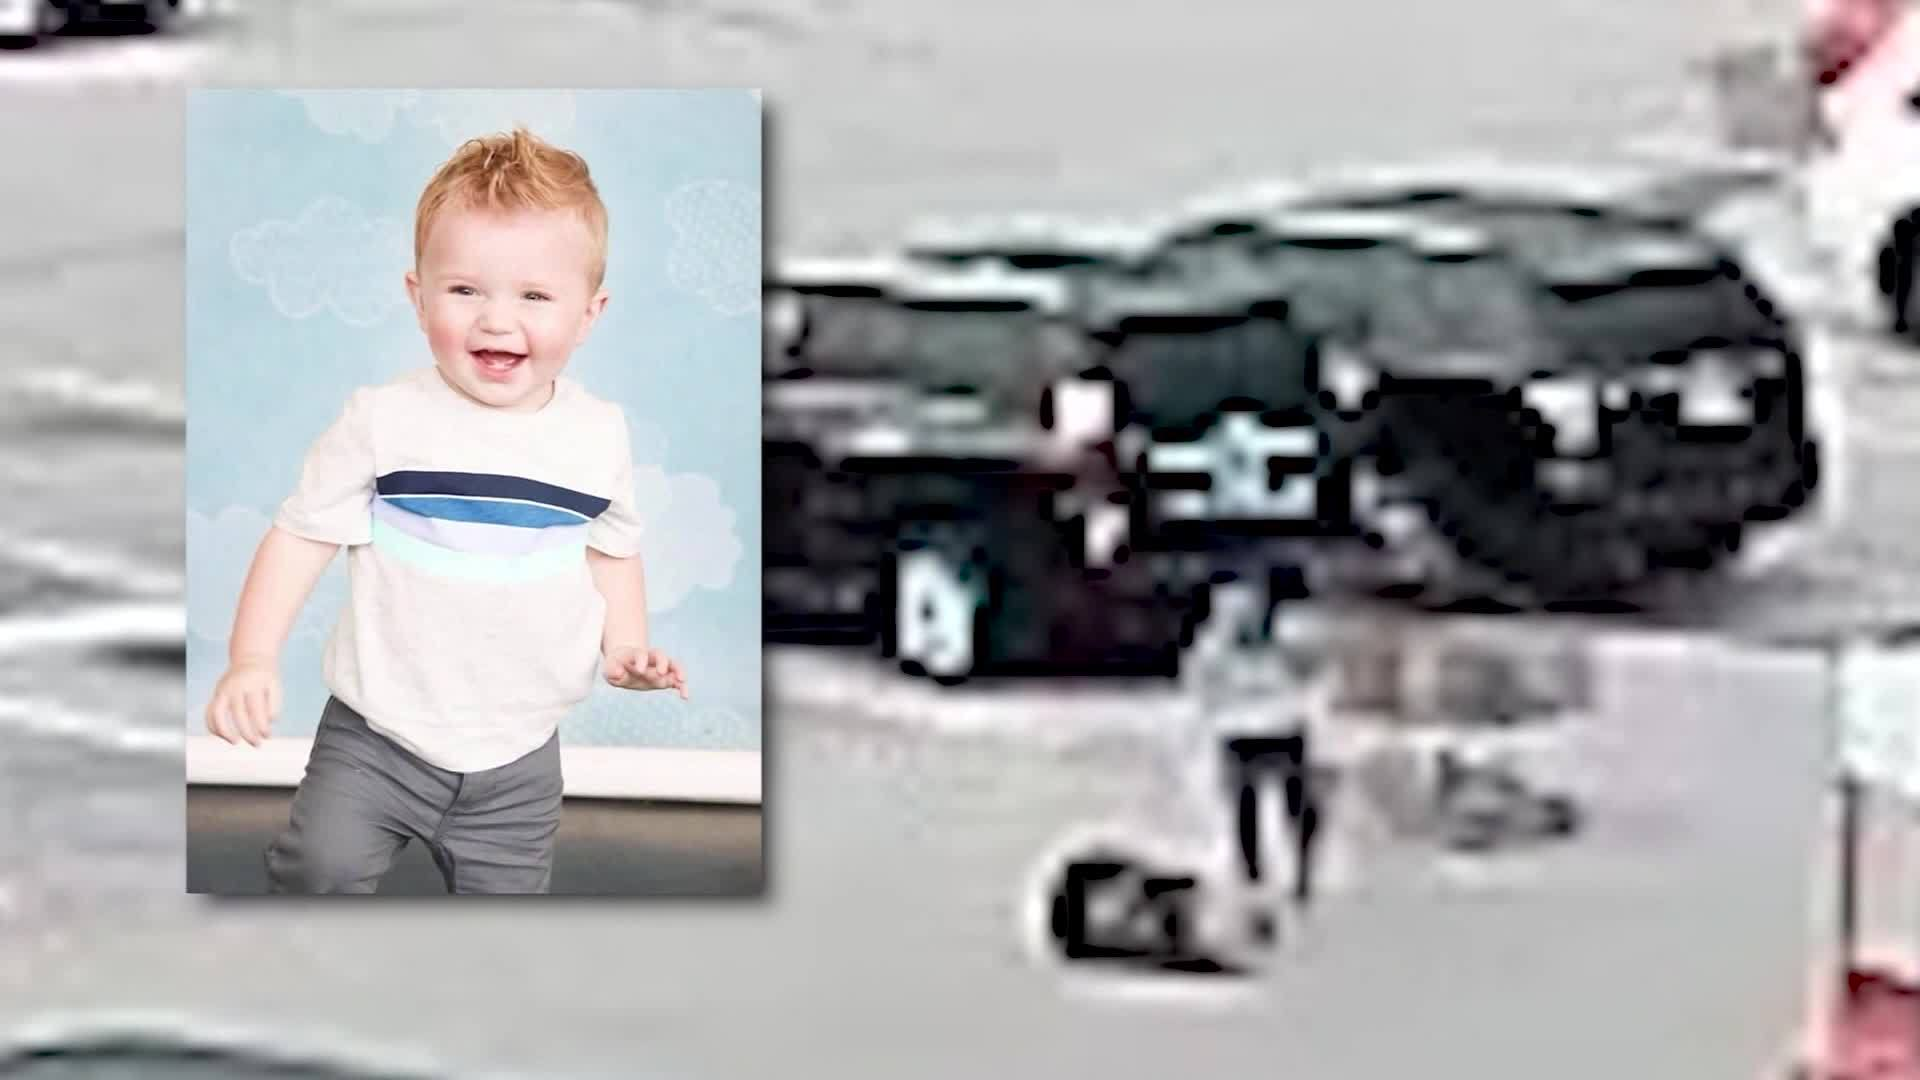 Teen_on_drugs_grabs_infant_in_car_seat_o_5_20190612092831-873704001